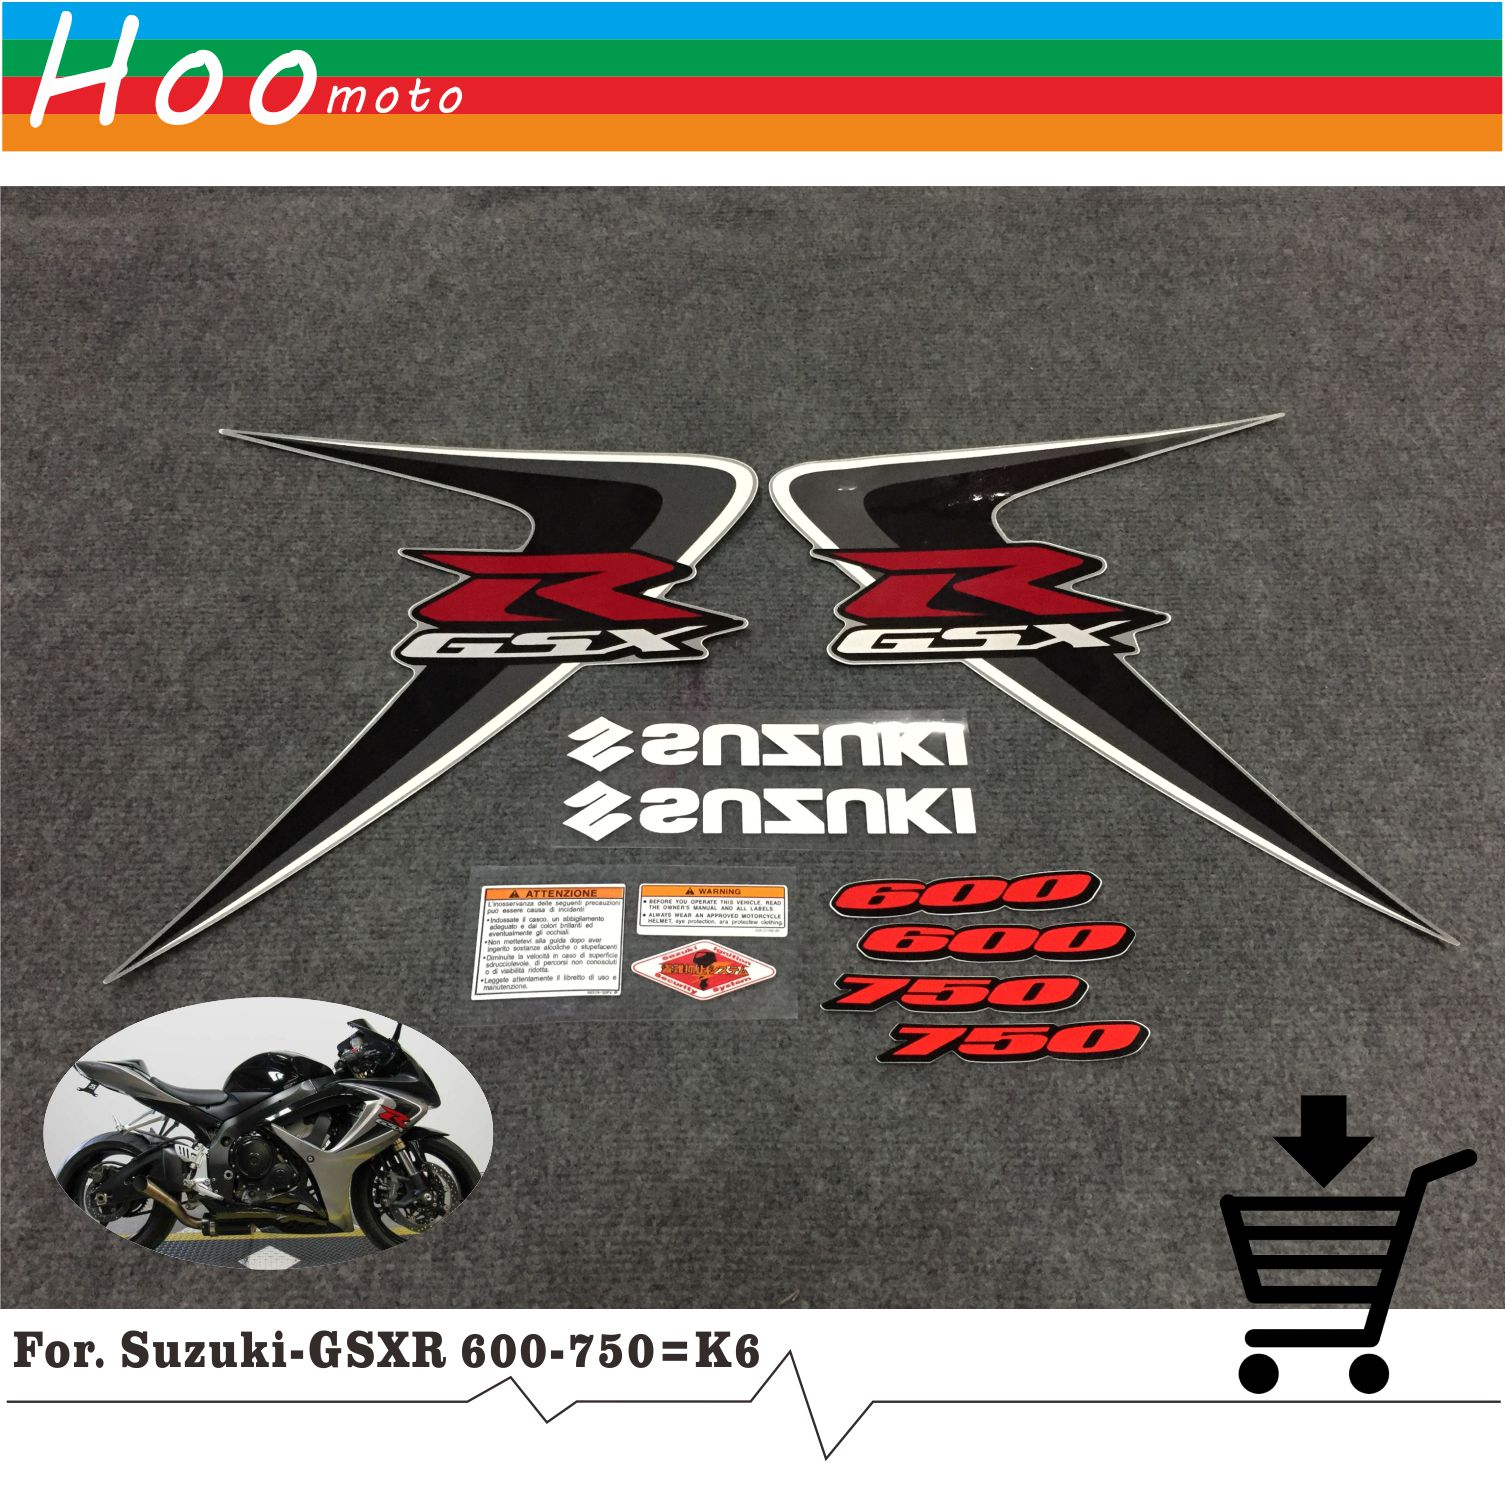 New for Suzuki GSXR GSX-R GSX R 600 K6 2006 MOTO High Quality Decals Sticker Motorcycle Car-styling Stickers More K6 K8 K11 K7<br>